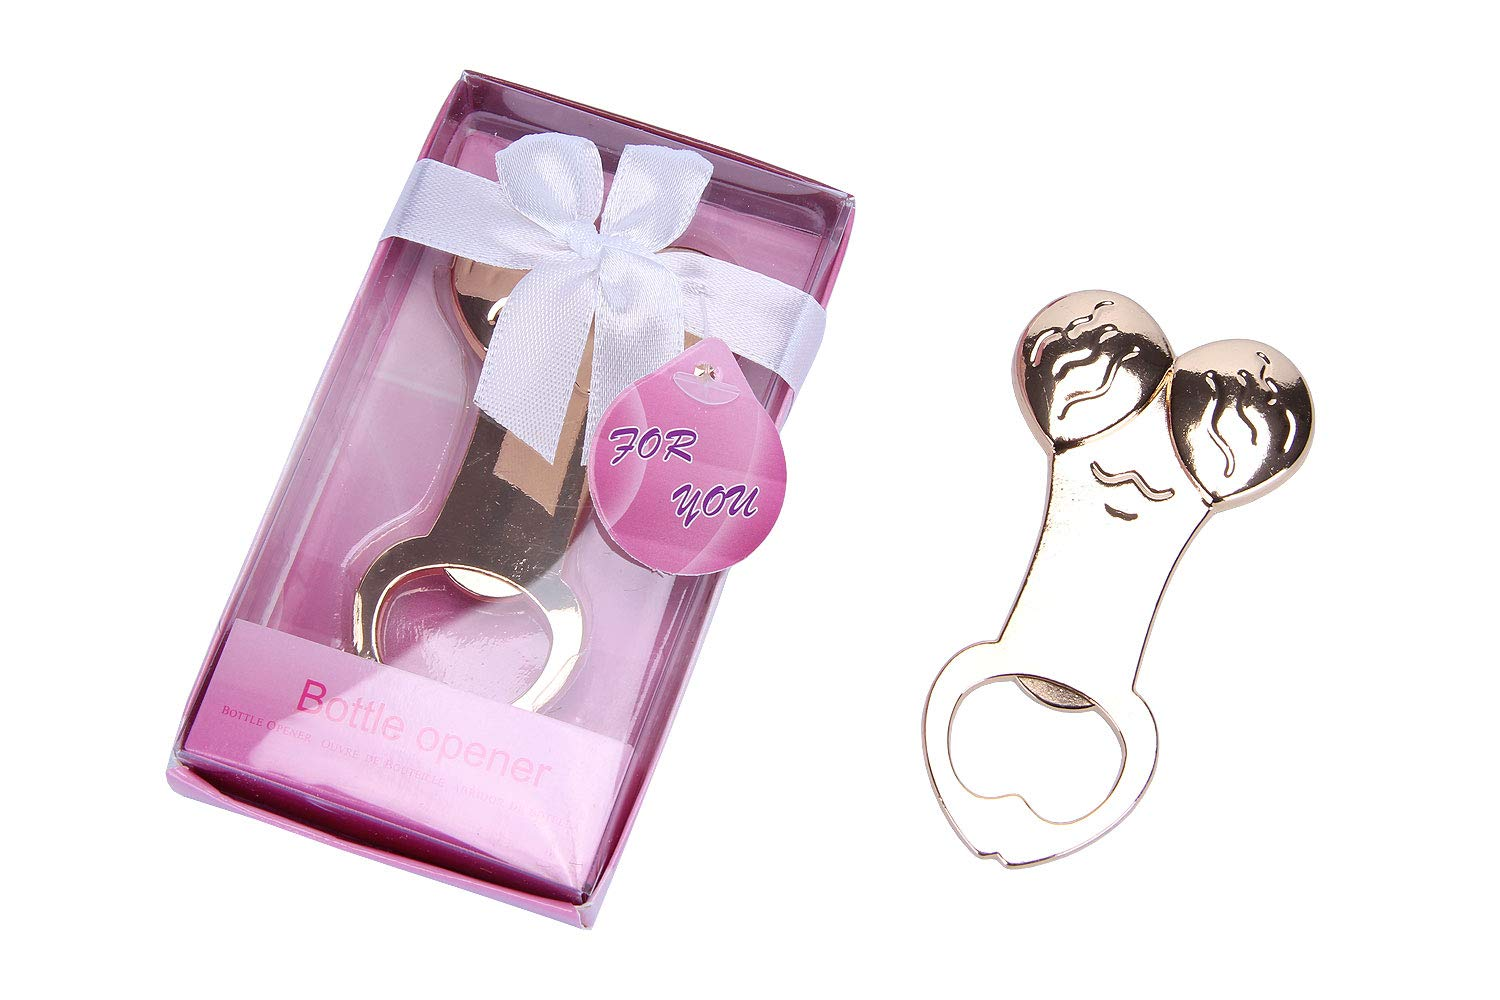 24 Packs Fun Bottle Openers Shaped Funy Hen Party Night Bachelorette Party Supplies Favor